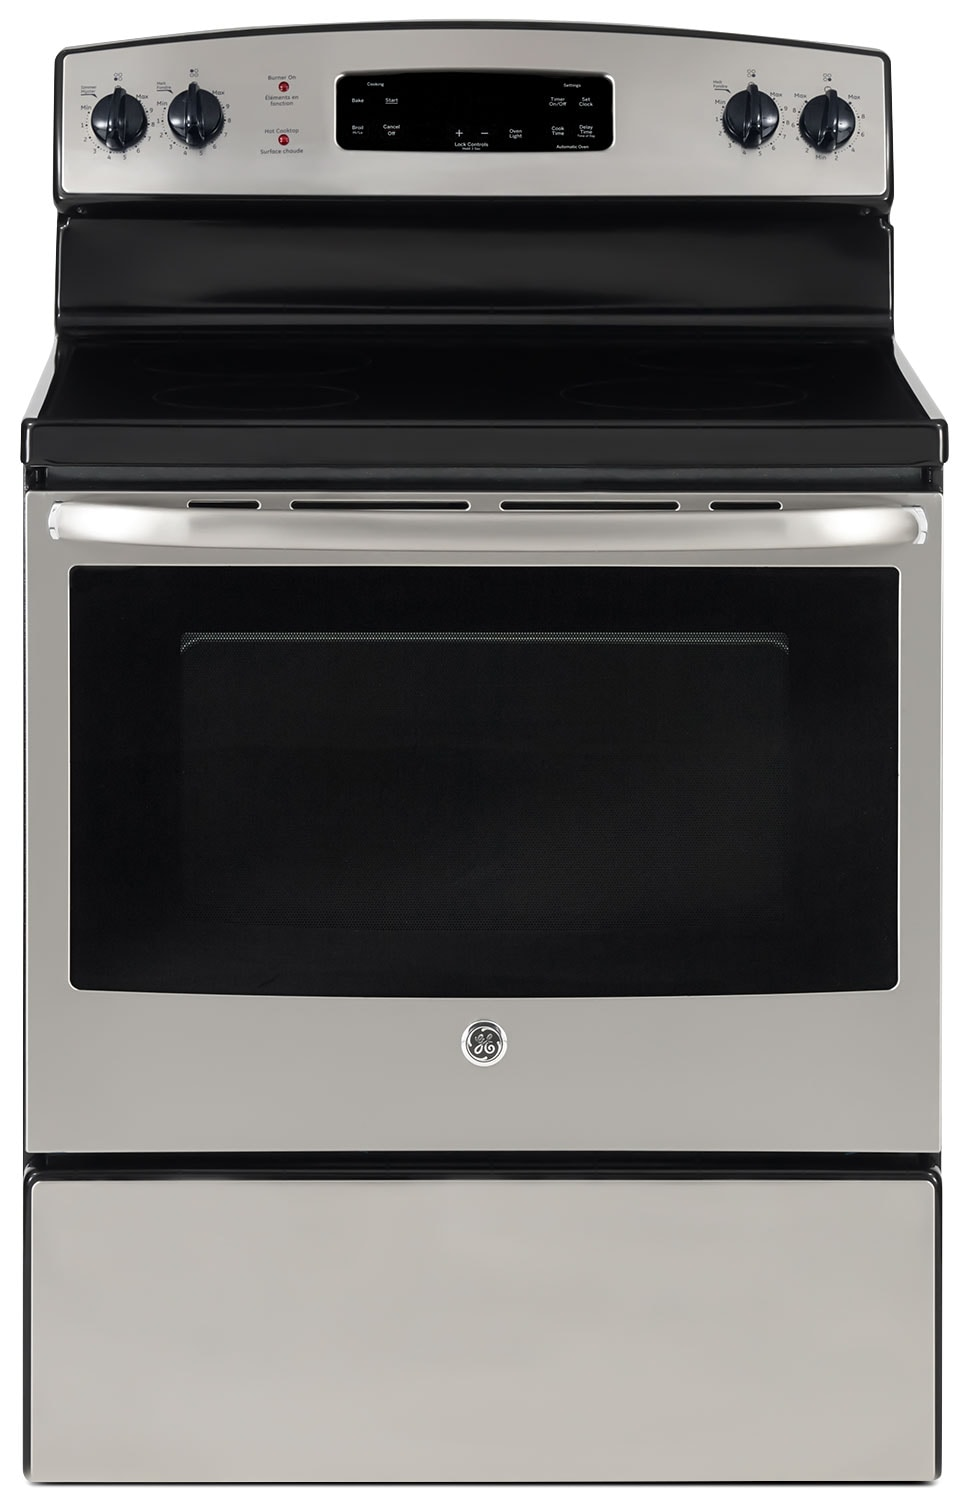 GE 5.0 Cu. Ft. Freestanding Electric Range – JCBS630SJSS